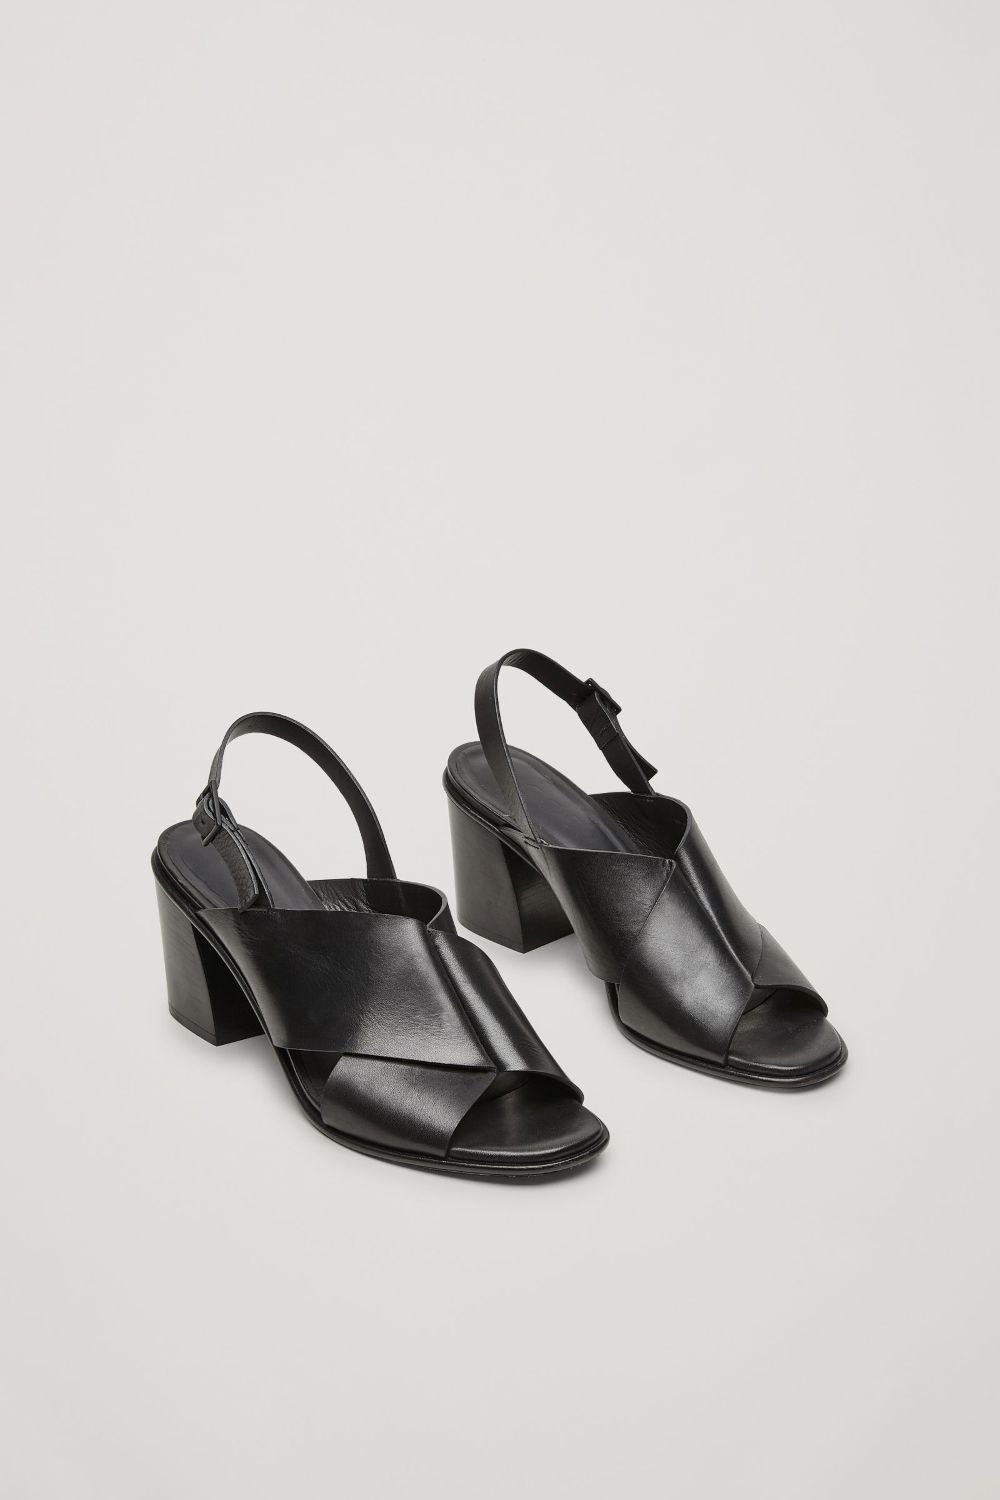 Cos Image 2 Of Folded Strap Sandals In Black Black Sandals Sandals Strap Sandals